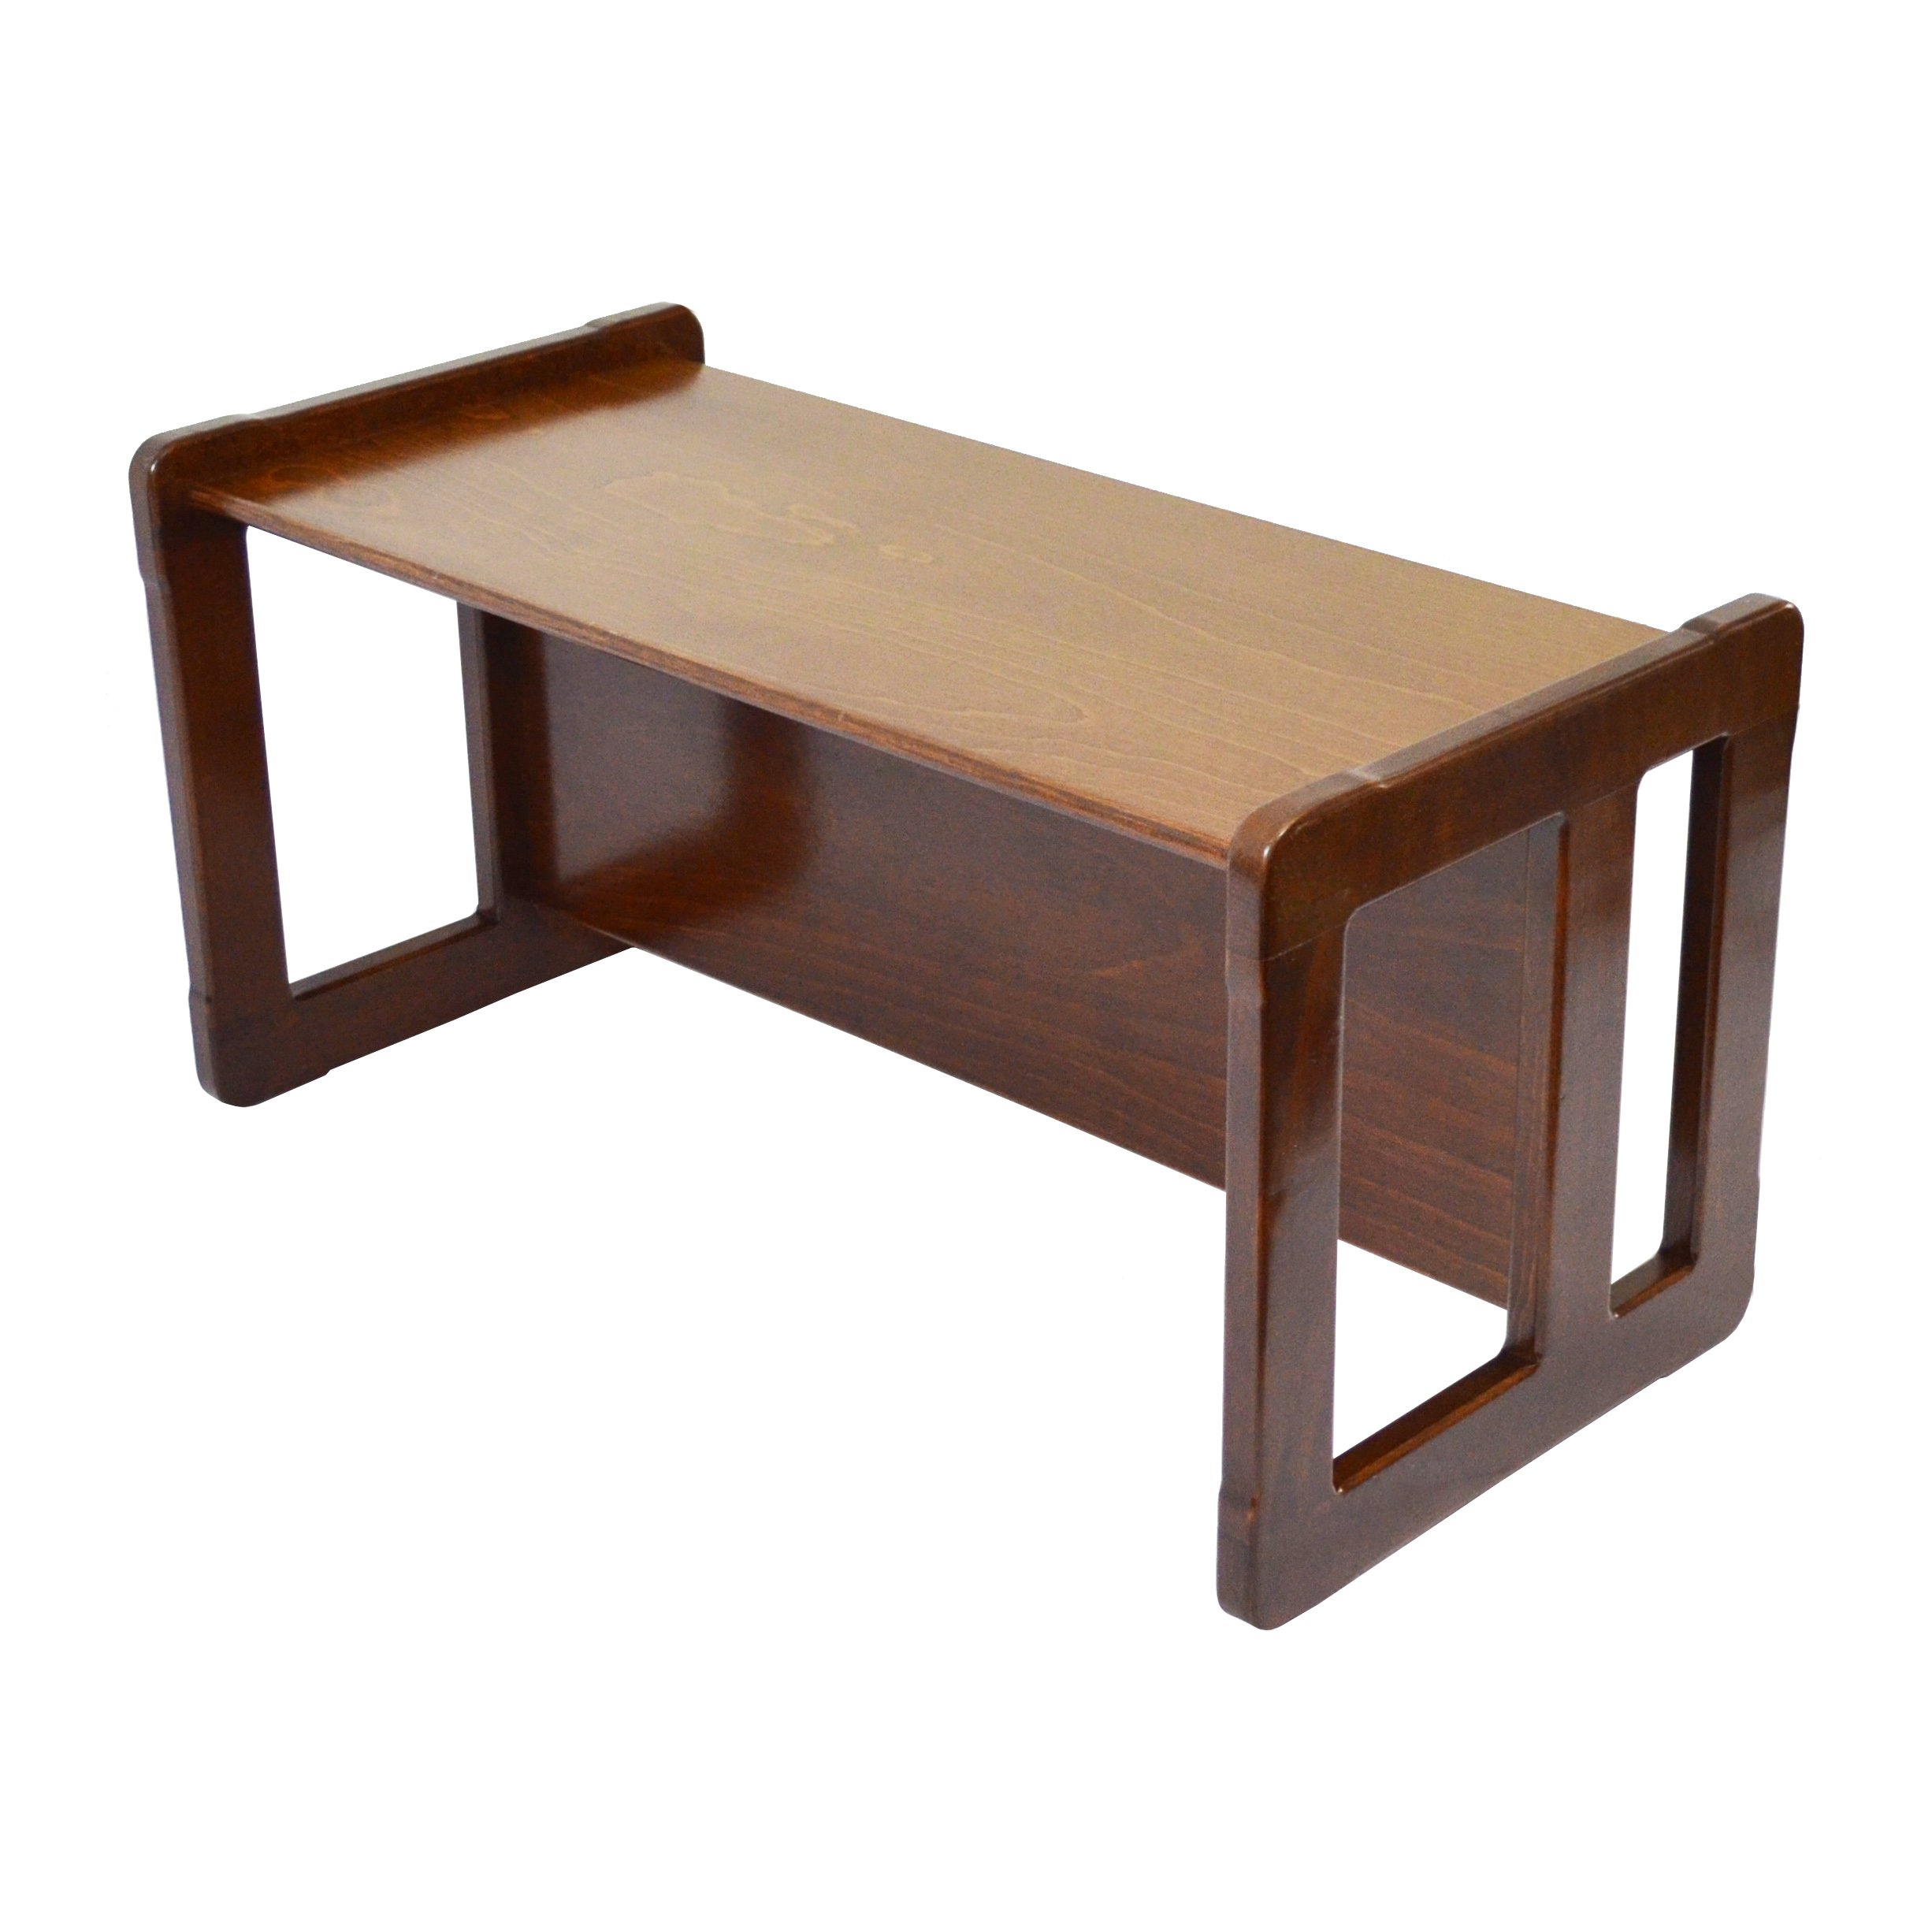 3 in 1 Childrens Multifunctional Furniture Set of 4, Two Small Chairs or Tables and One Small Bench or Table and One Large Bench or Table Beech Wood, Dark Stained by Obique Ltd (Image #7)